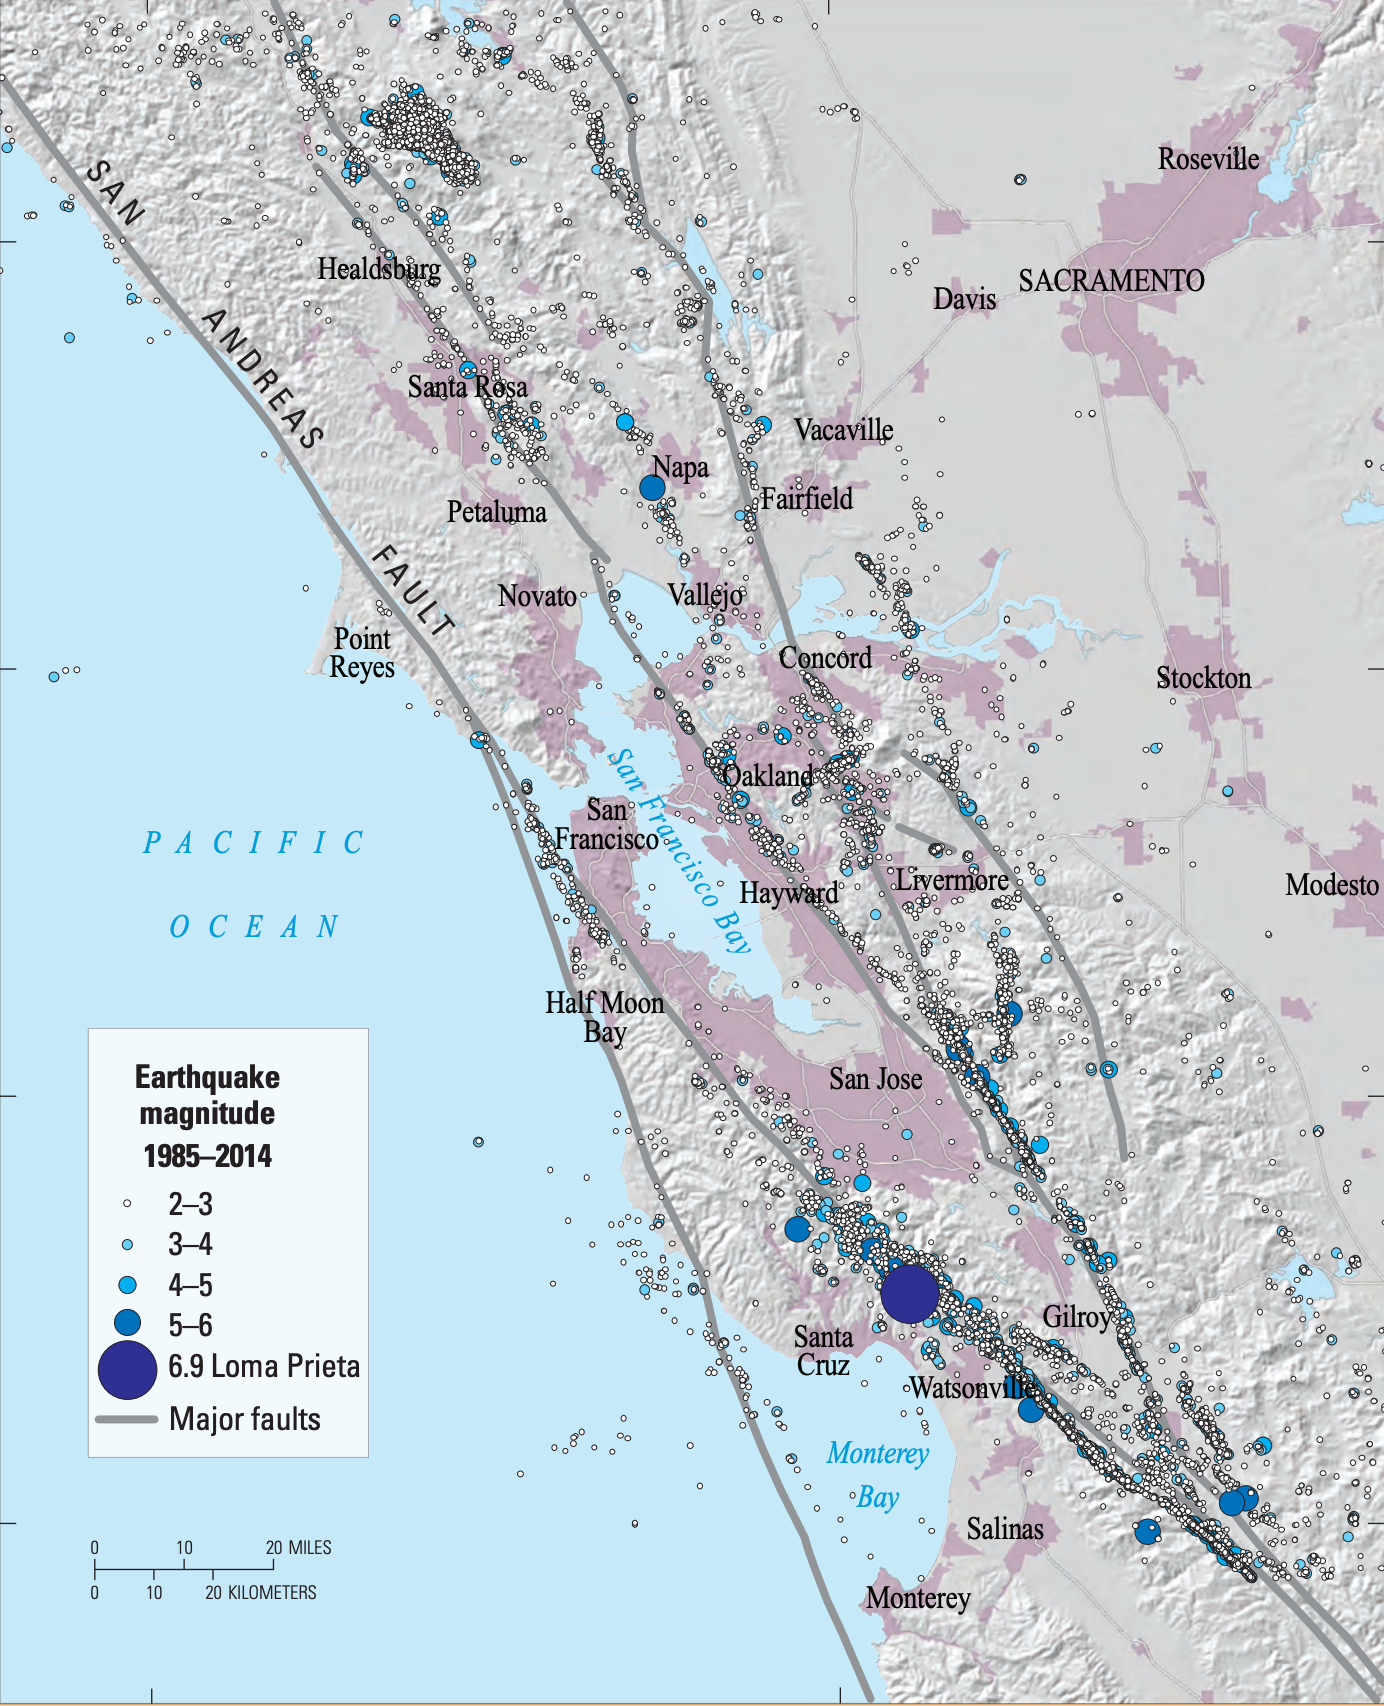 California S Earthquake Faults That's stronger than the 1989 loma prieta quake. california s earthquake faults